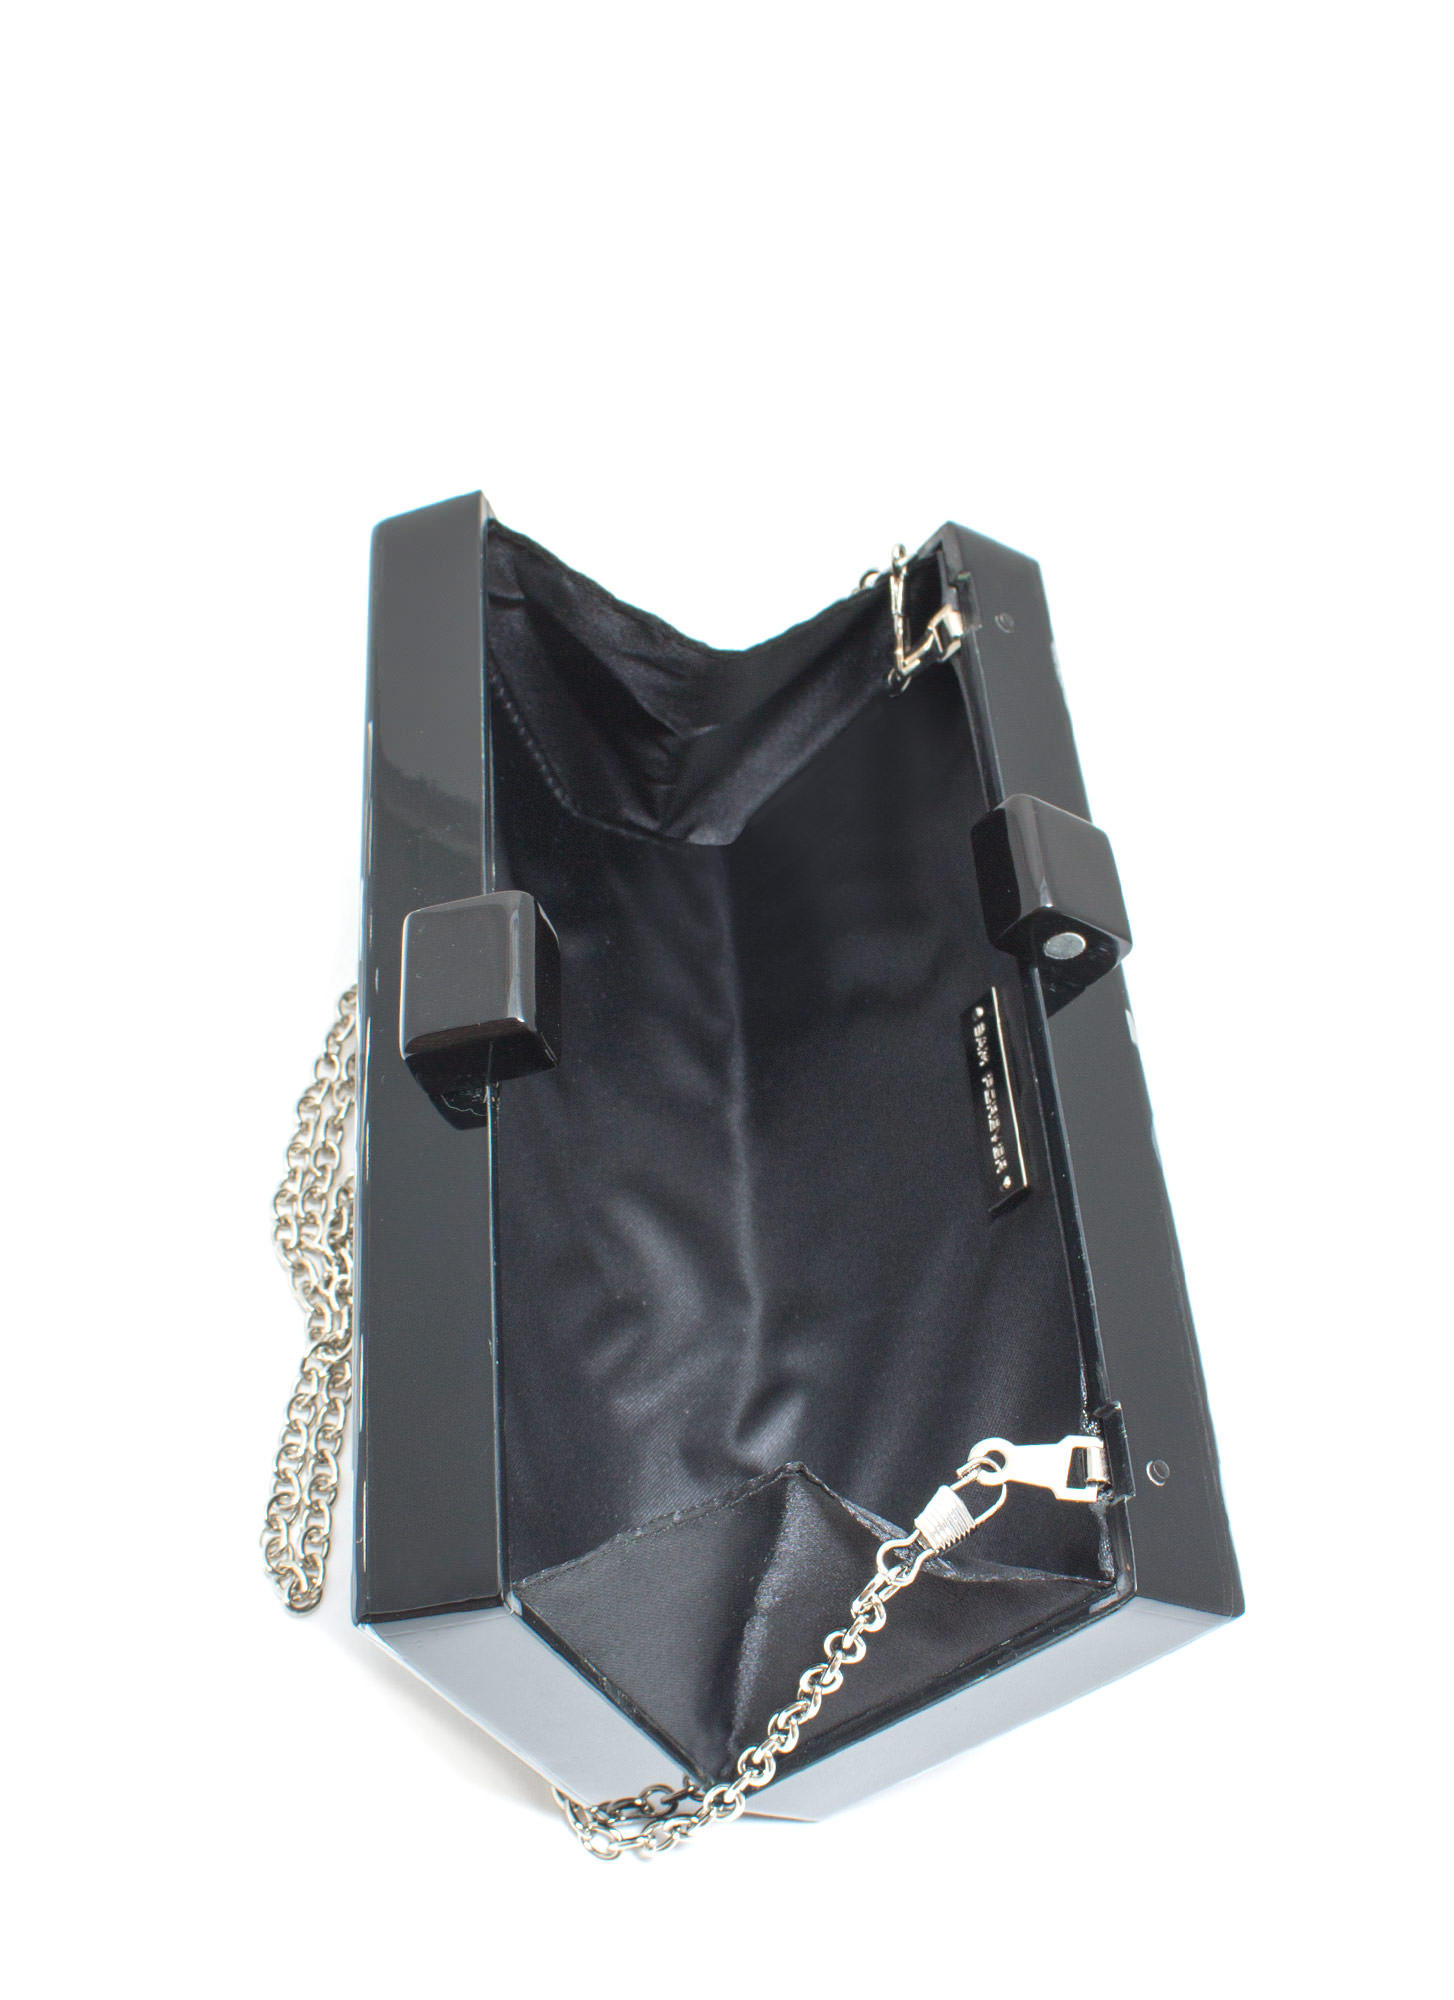 Domino Rally Resin Clutch BLACK